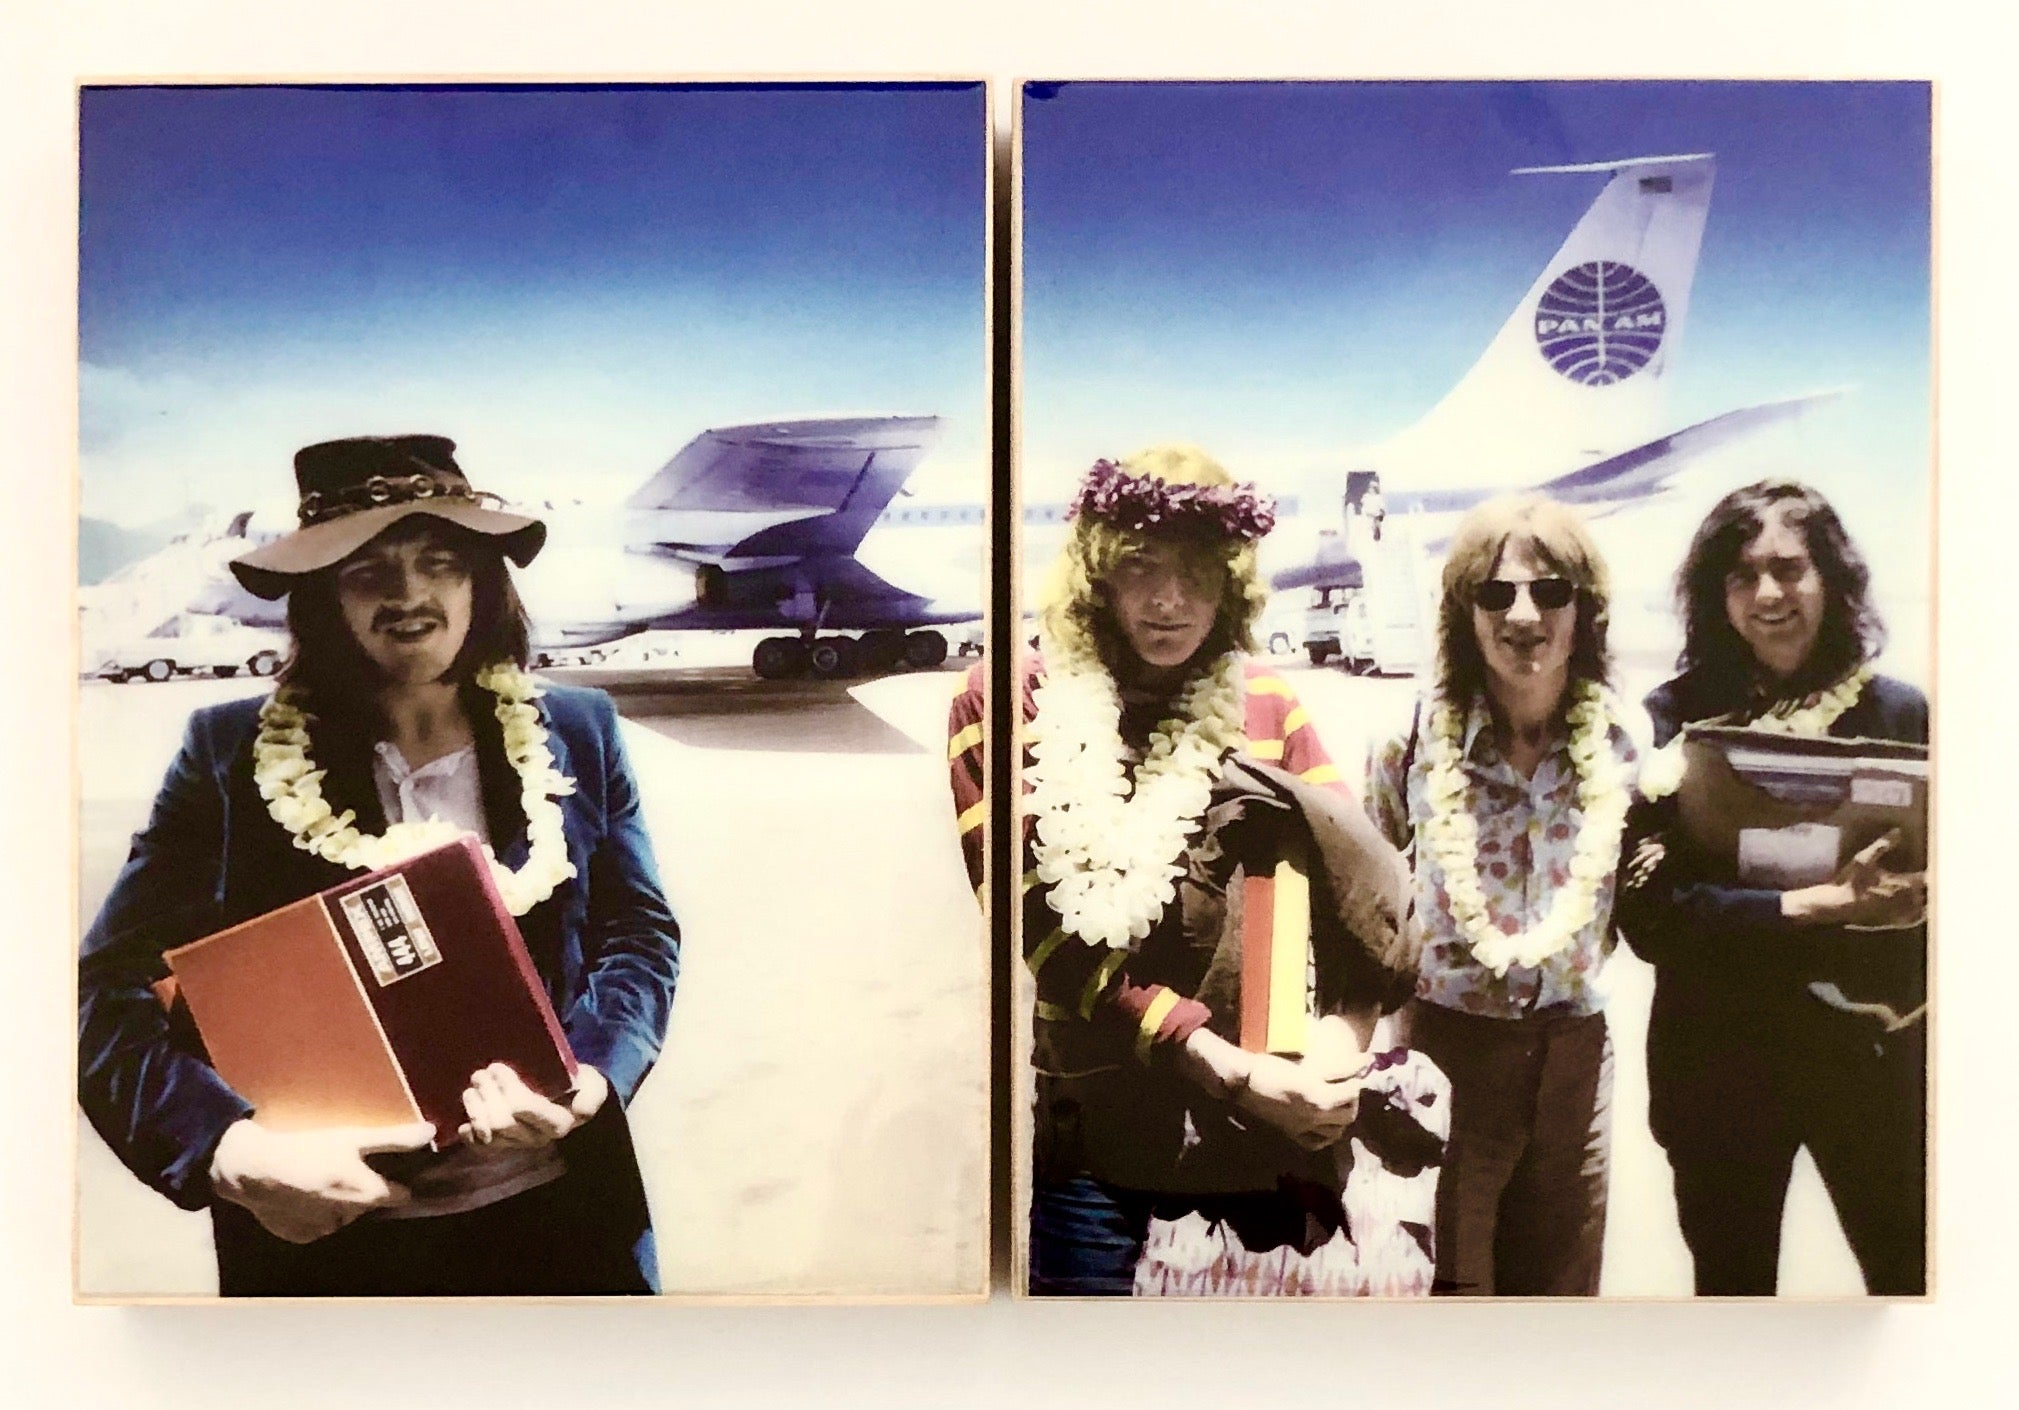 LED ZEPPELIN - 1970 World Tour Hawaii